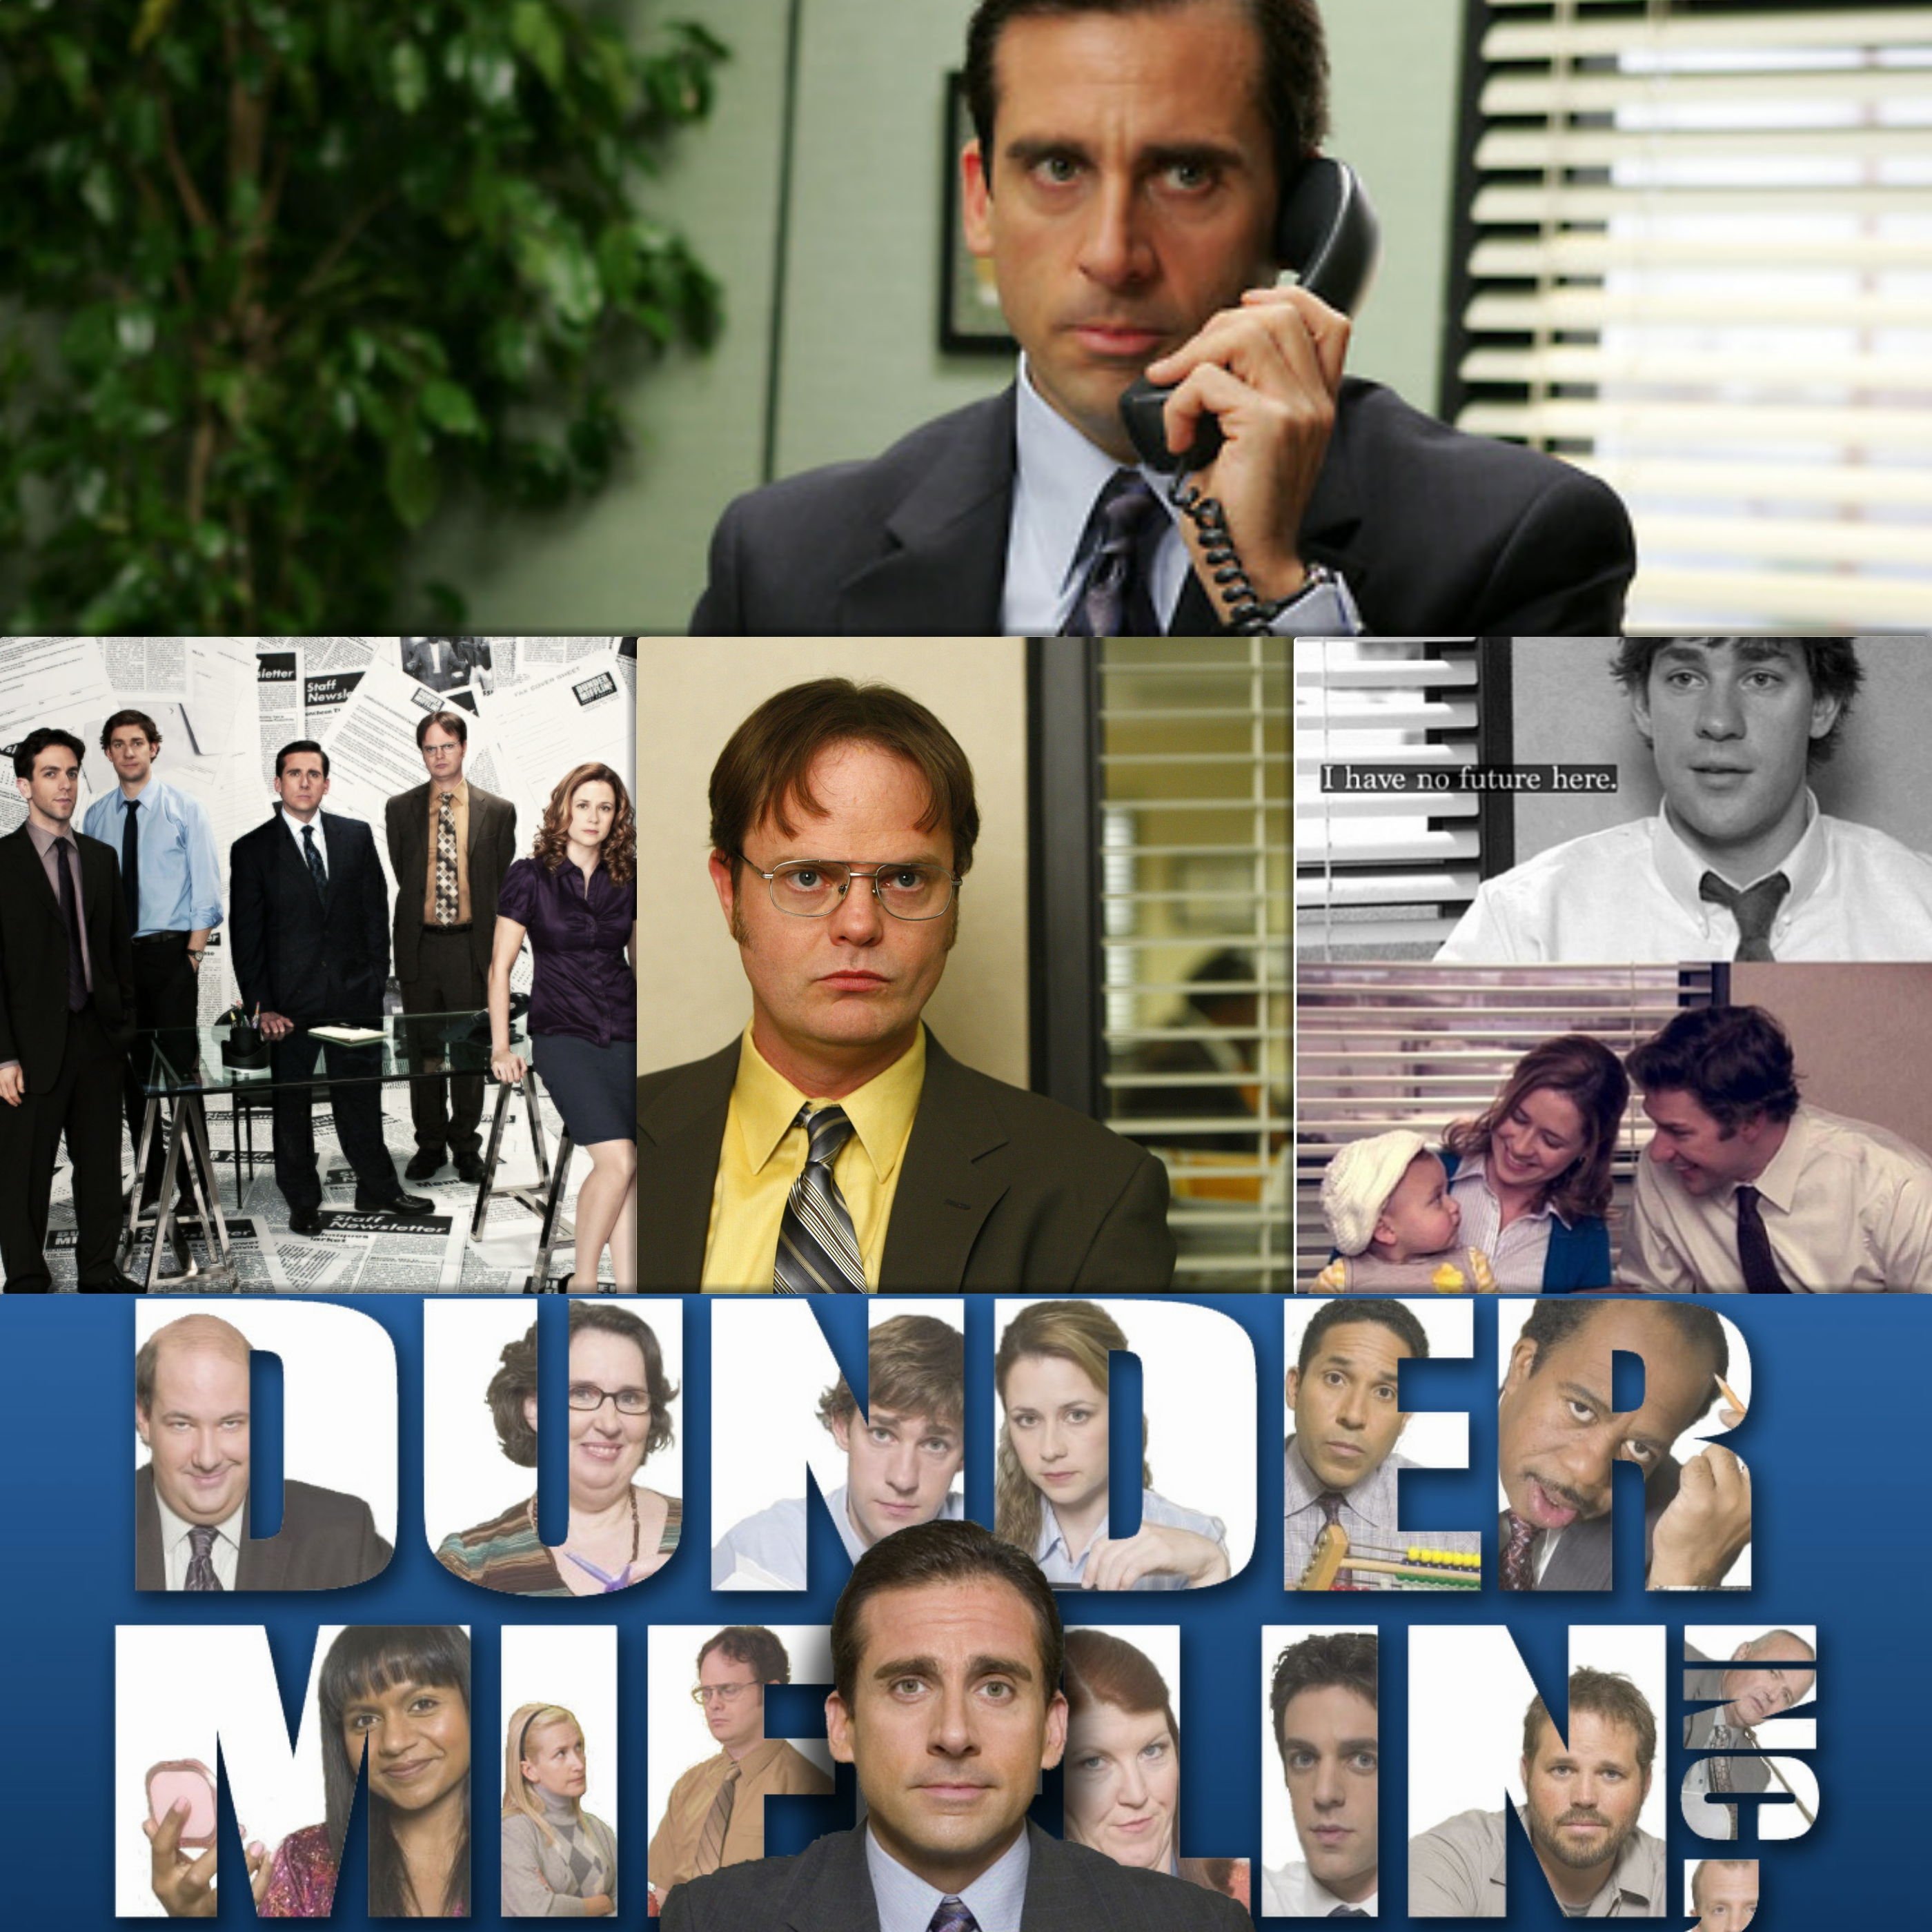 office collage